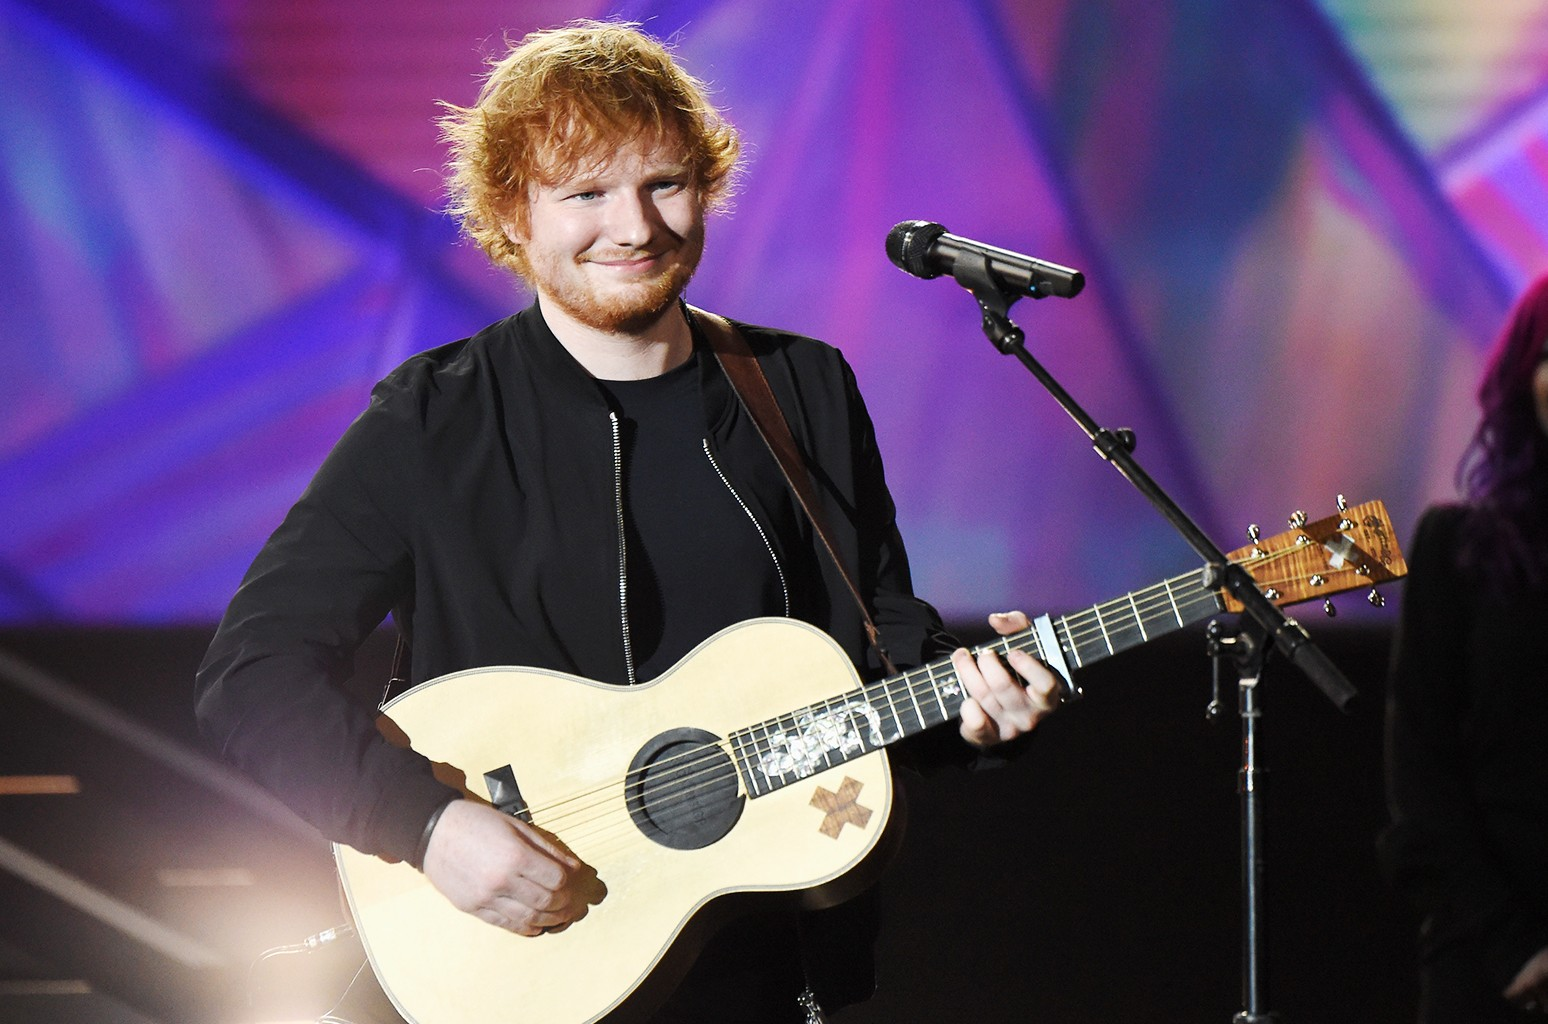 Ed Sheeran performs onstage at A+E Networks 'Shining A Light' concert at The Shrine Auditorium on Nov. 18, 2015 in Los Angeles.